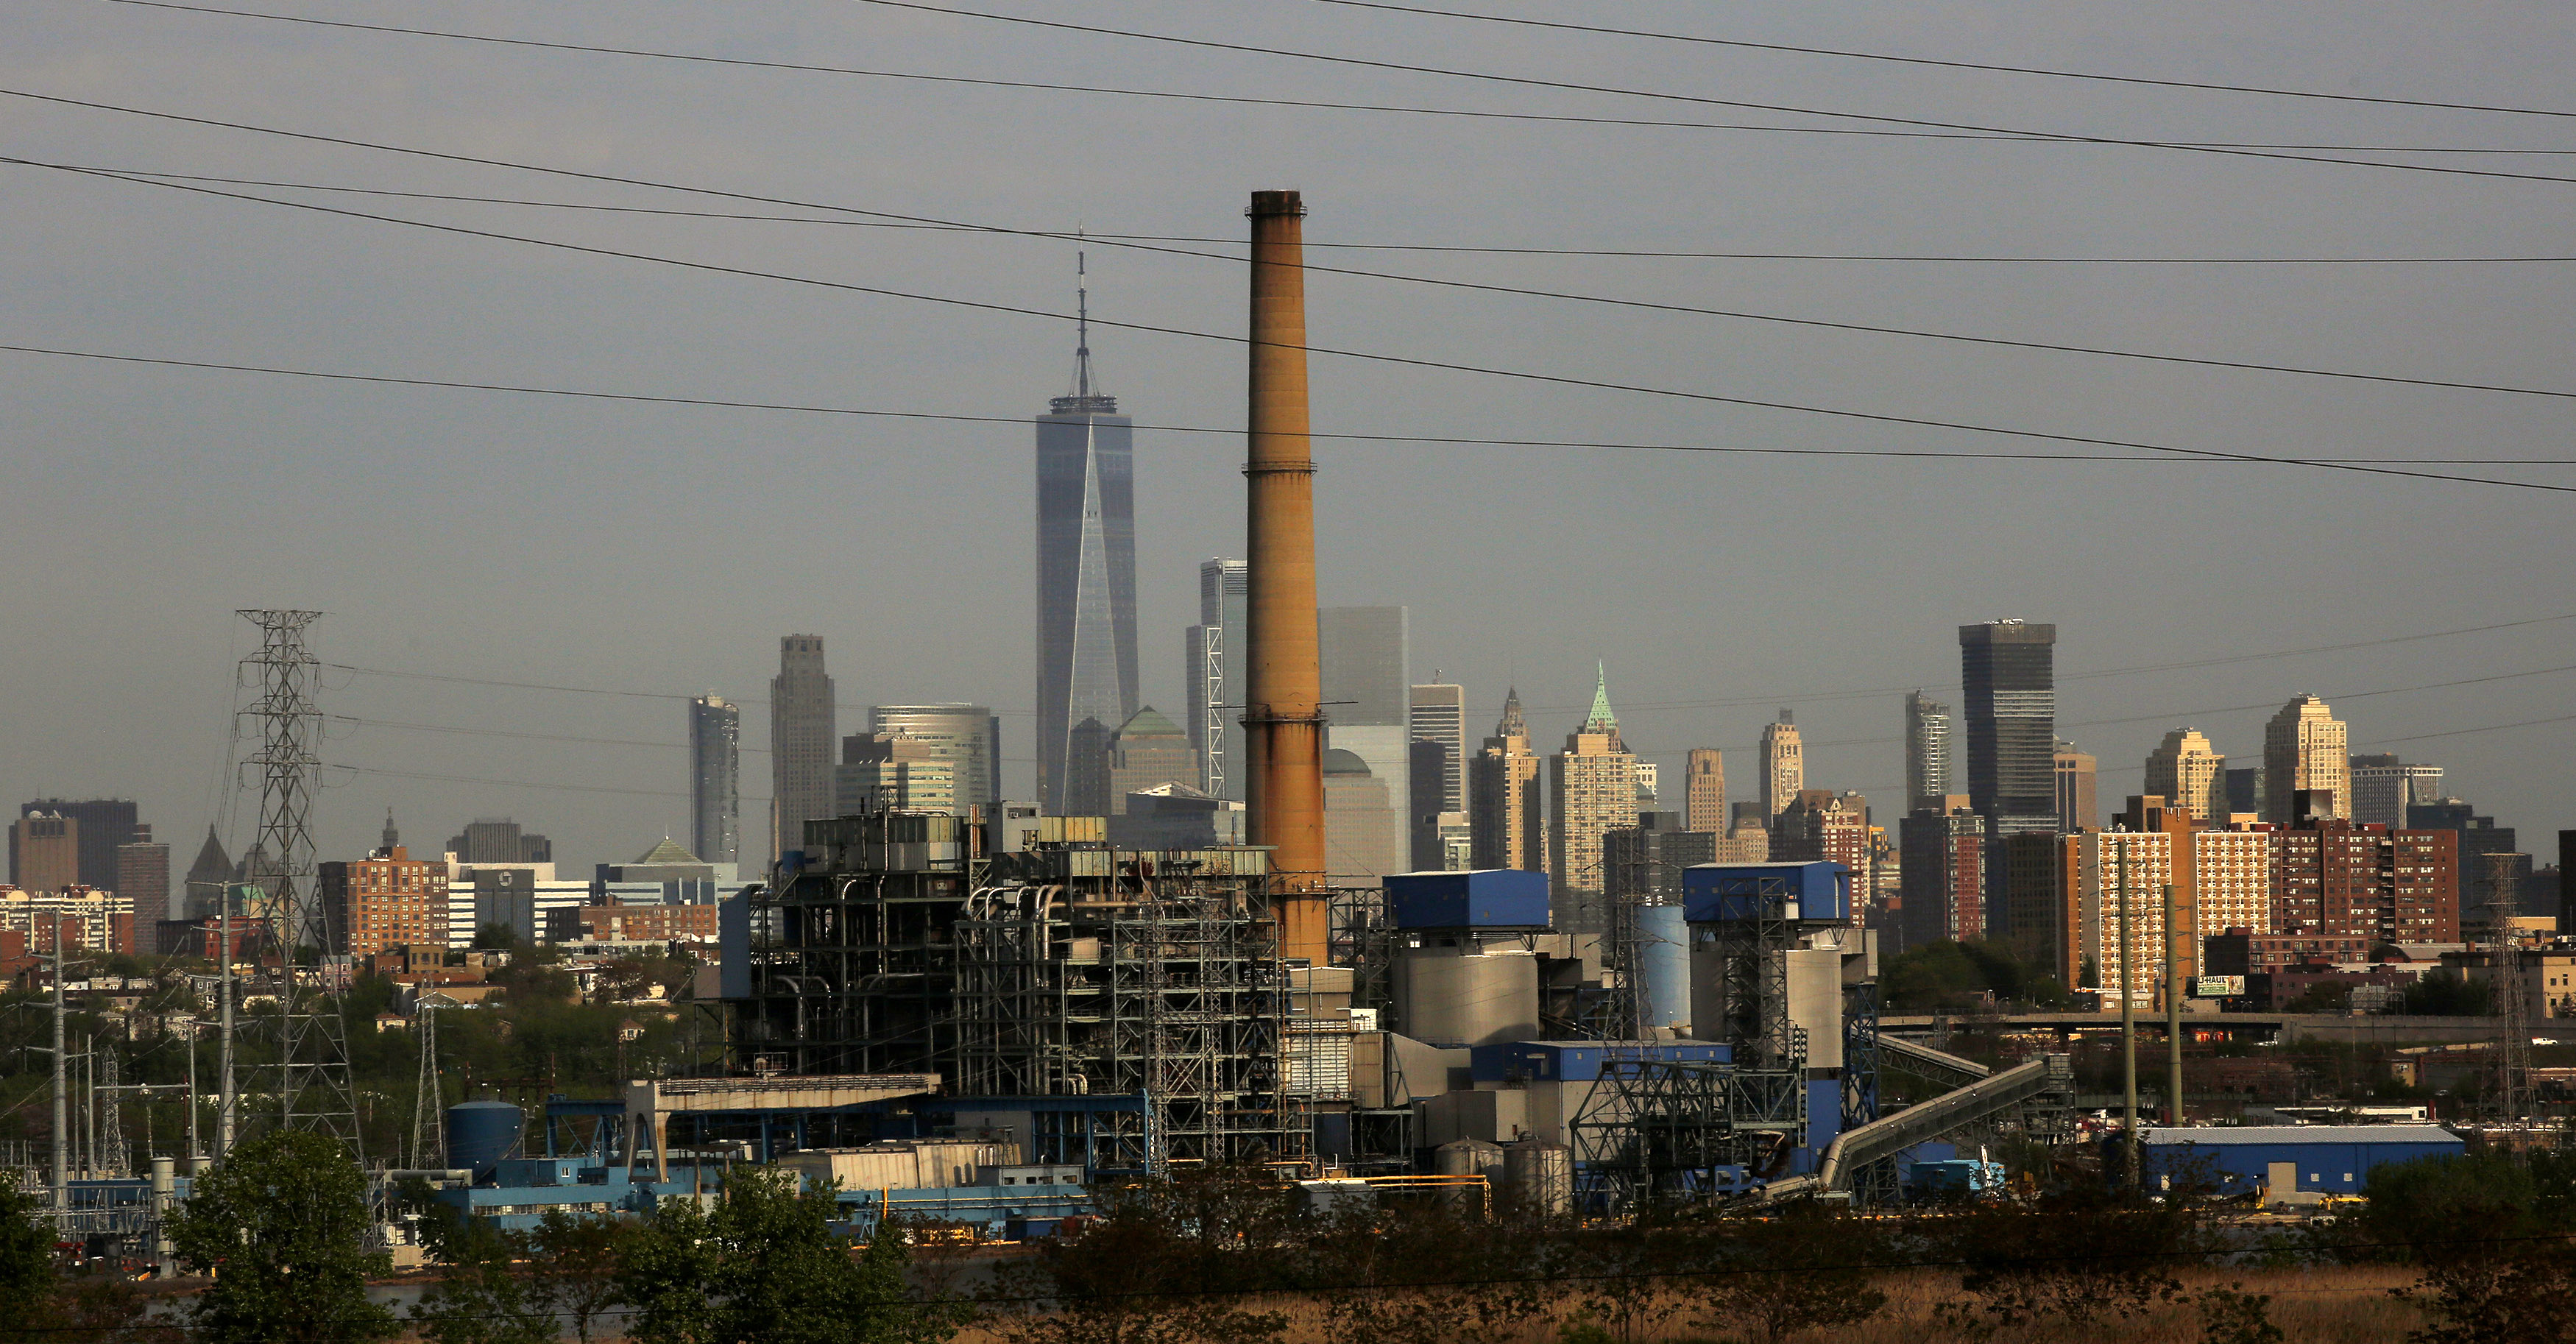 JERSEY CITY, NJ - MAY 10: The world trade center building is seen on the background of the Hudson Generating Station in Jersey City, New Jersey on May 10 2018. The U.S. Environmental Protection Agency (EPA) is opposing to the effort to repeal the historic climate change protection rule for power plants made by former President Barack Obama, Environmental Defense groups, are fighting back against the Trump administrationÕs request to delay the litigation over the Environmental Protection AgencyÕs (EPA) Clean Power Plan for another 60 days. (Photo by Kena Betancur/VIEWpress/Corbis via Getty Images)